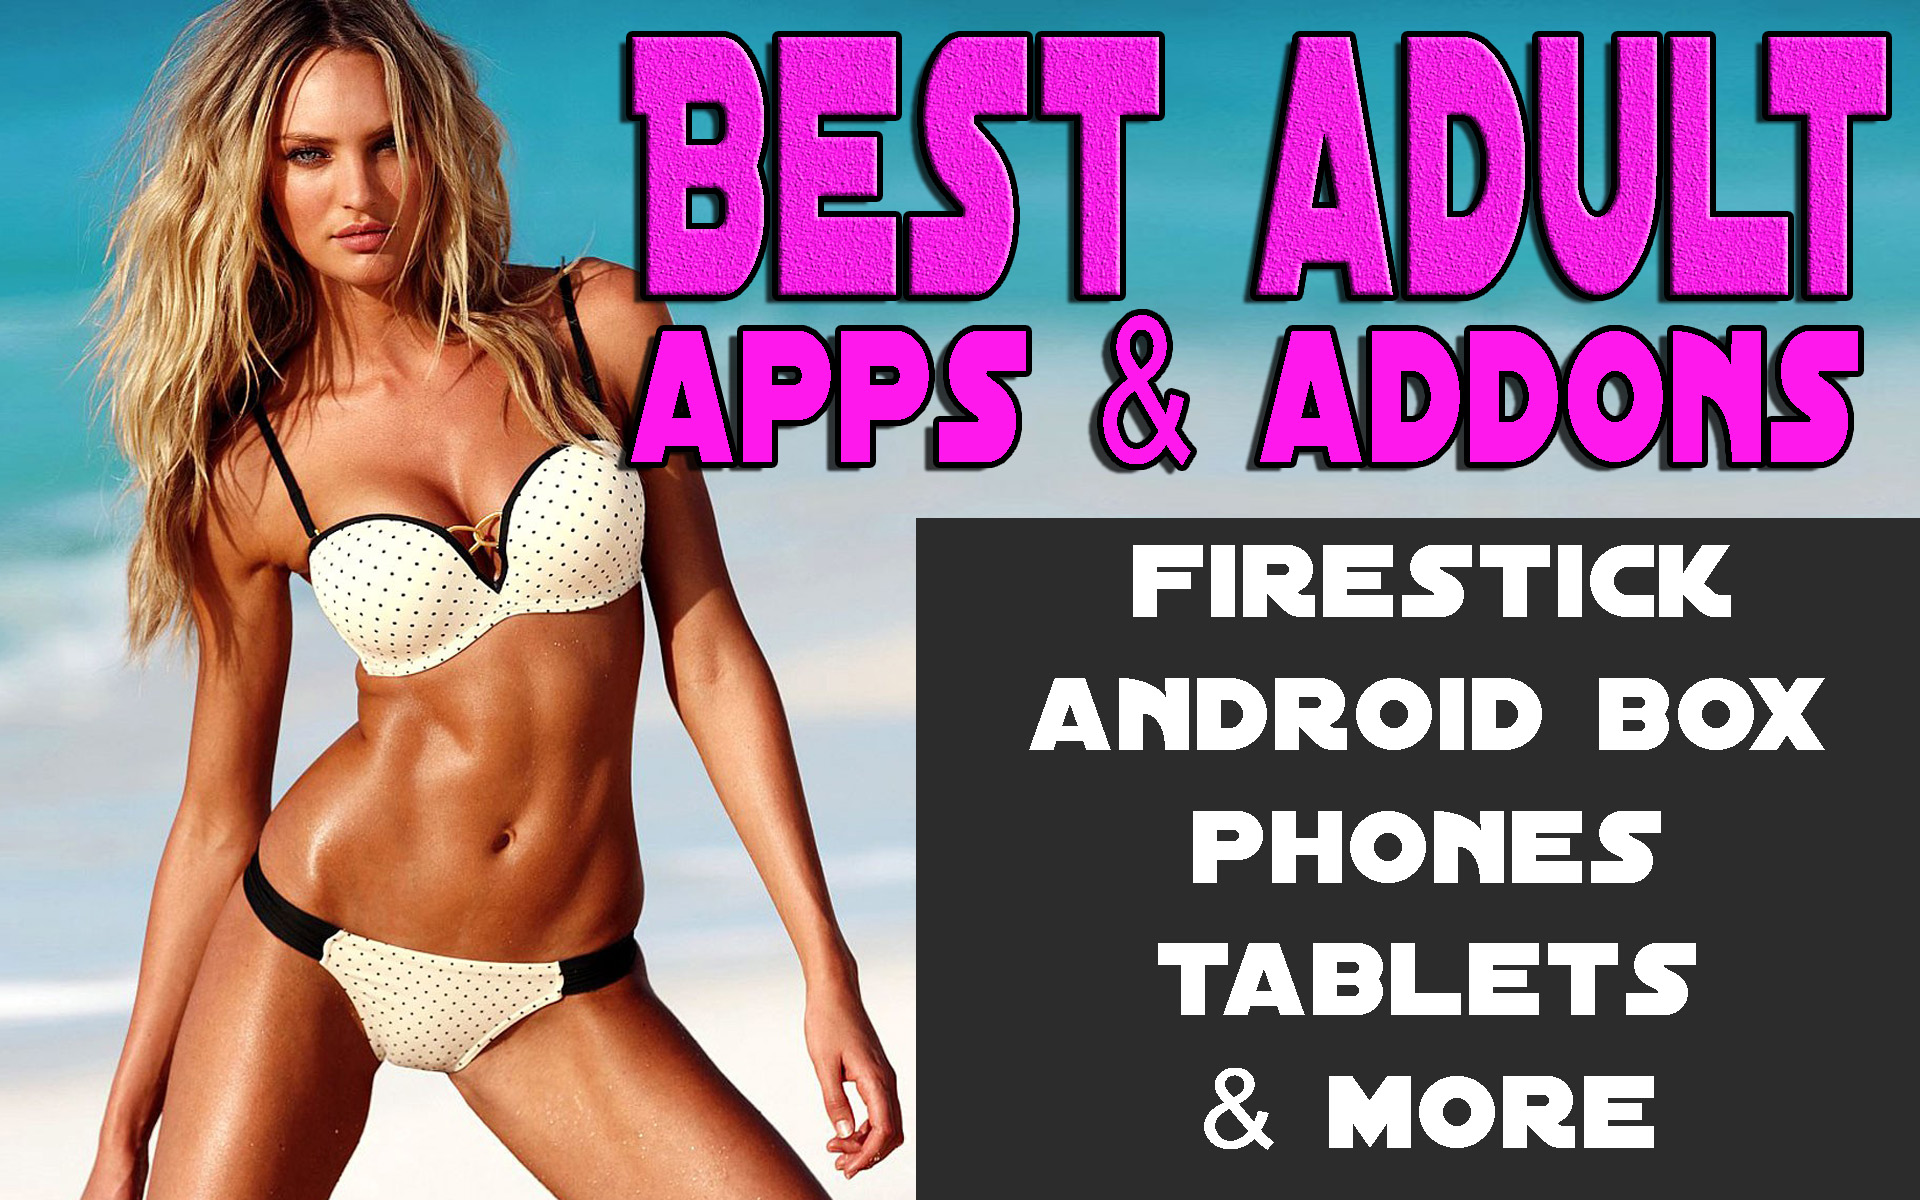 Best Adult Apps for firestick Android